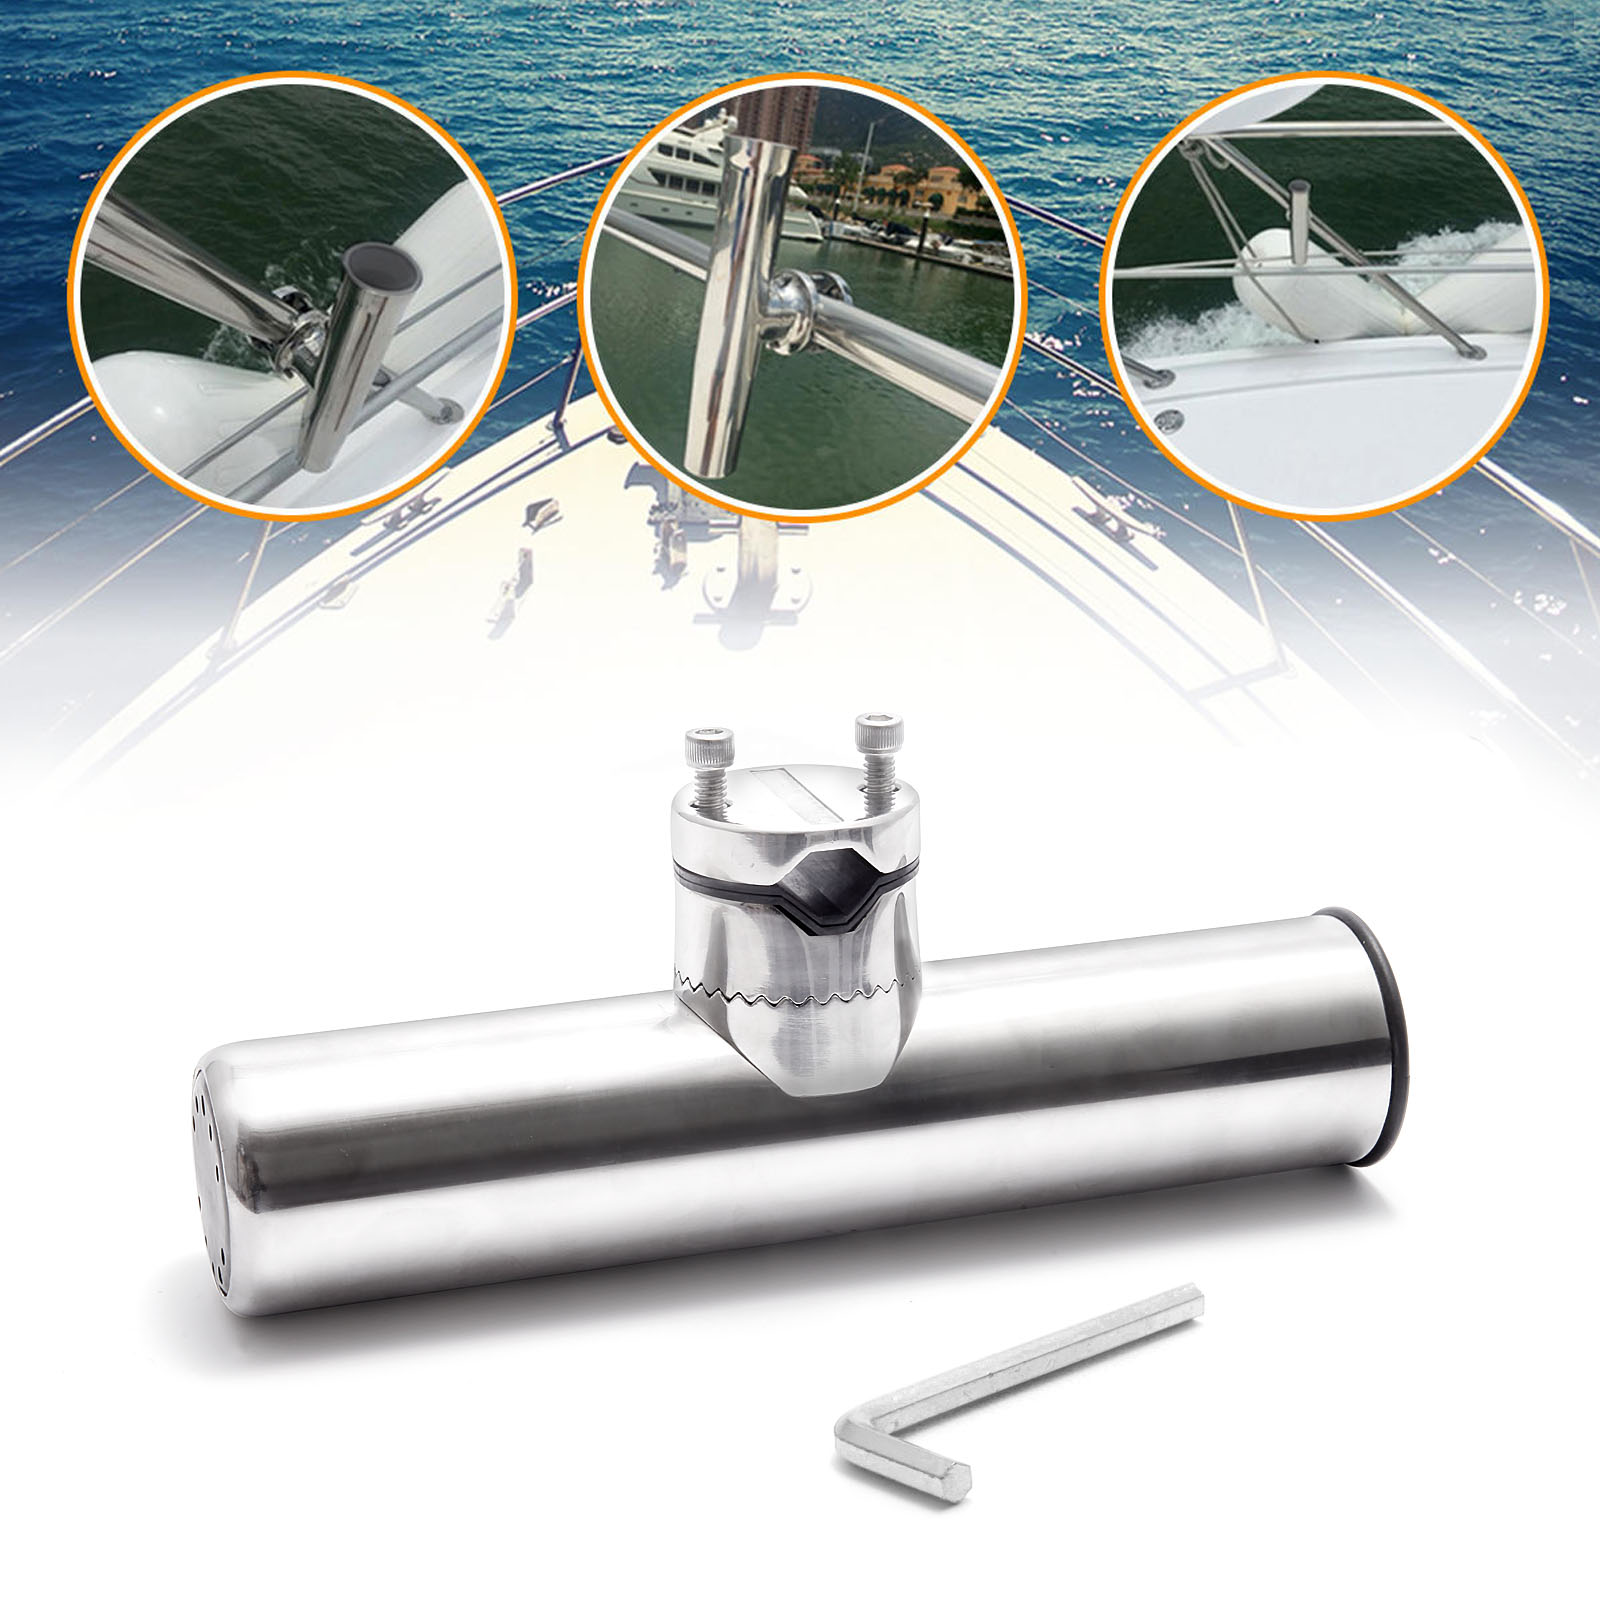 316l stainless steel fishing rod holder boat sea tackle for Fishing pole holders for boats